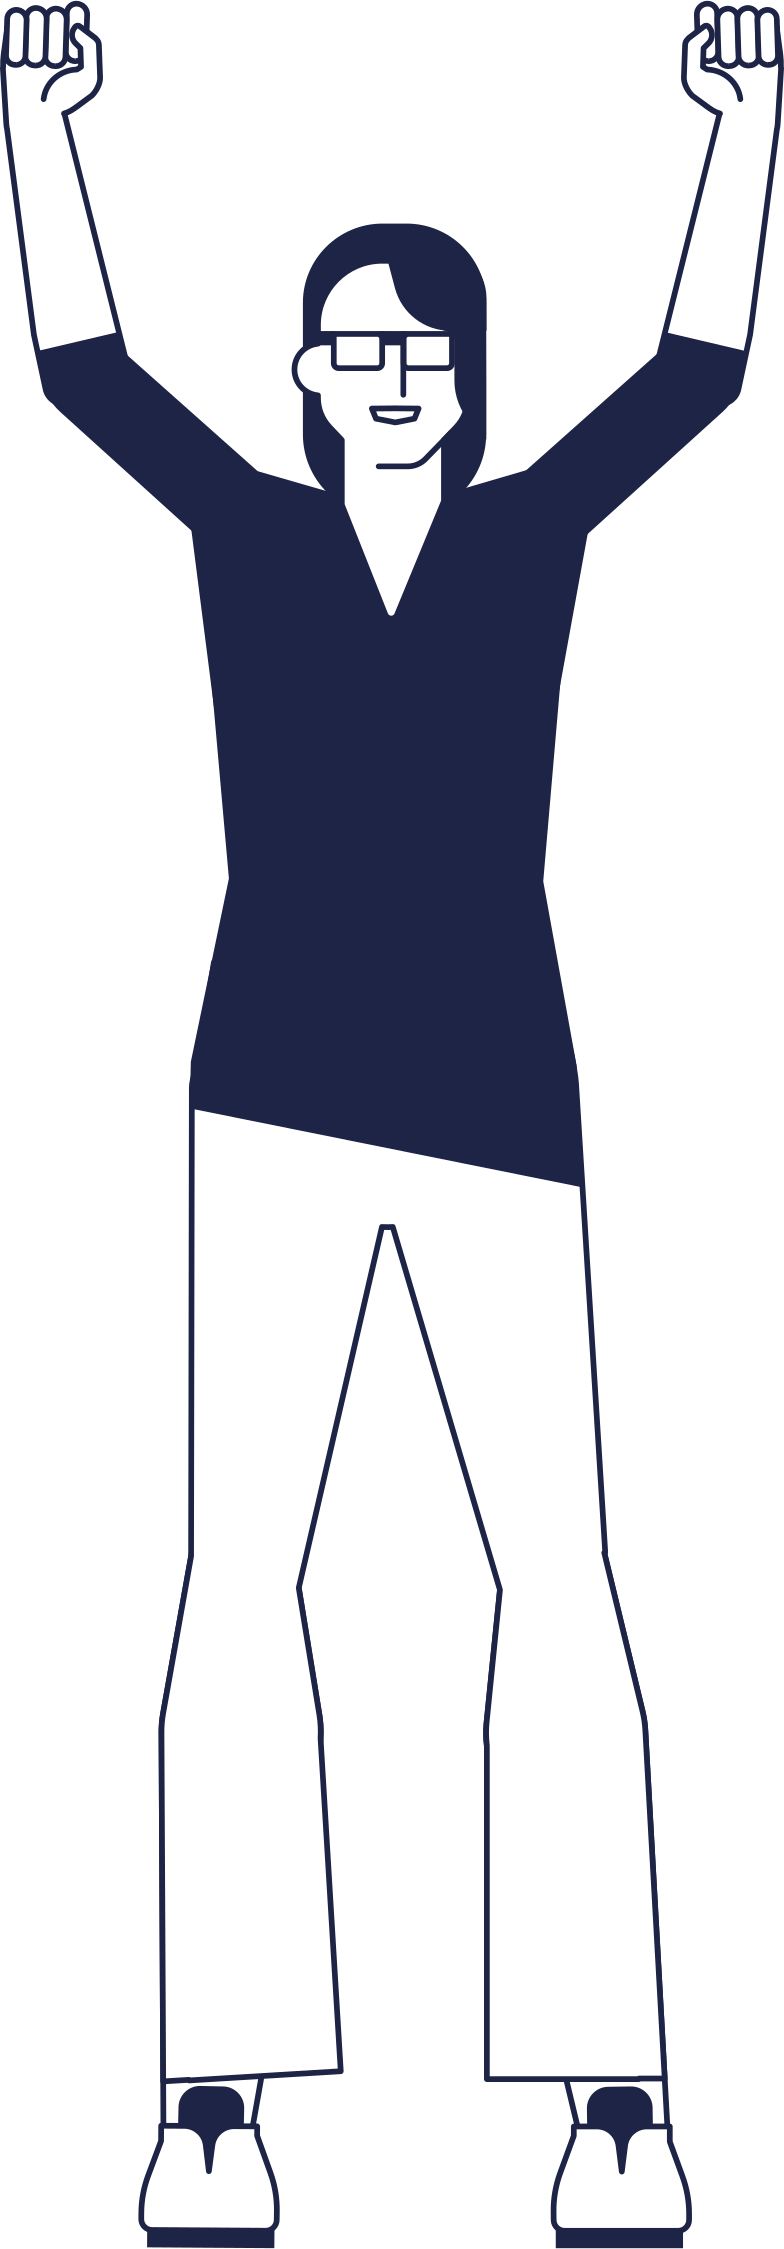 woman with hands up Clipart illustration in PNG, SVG